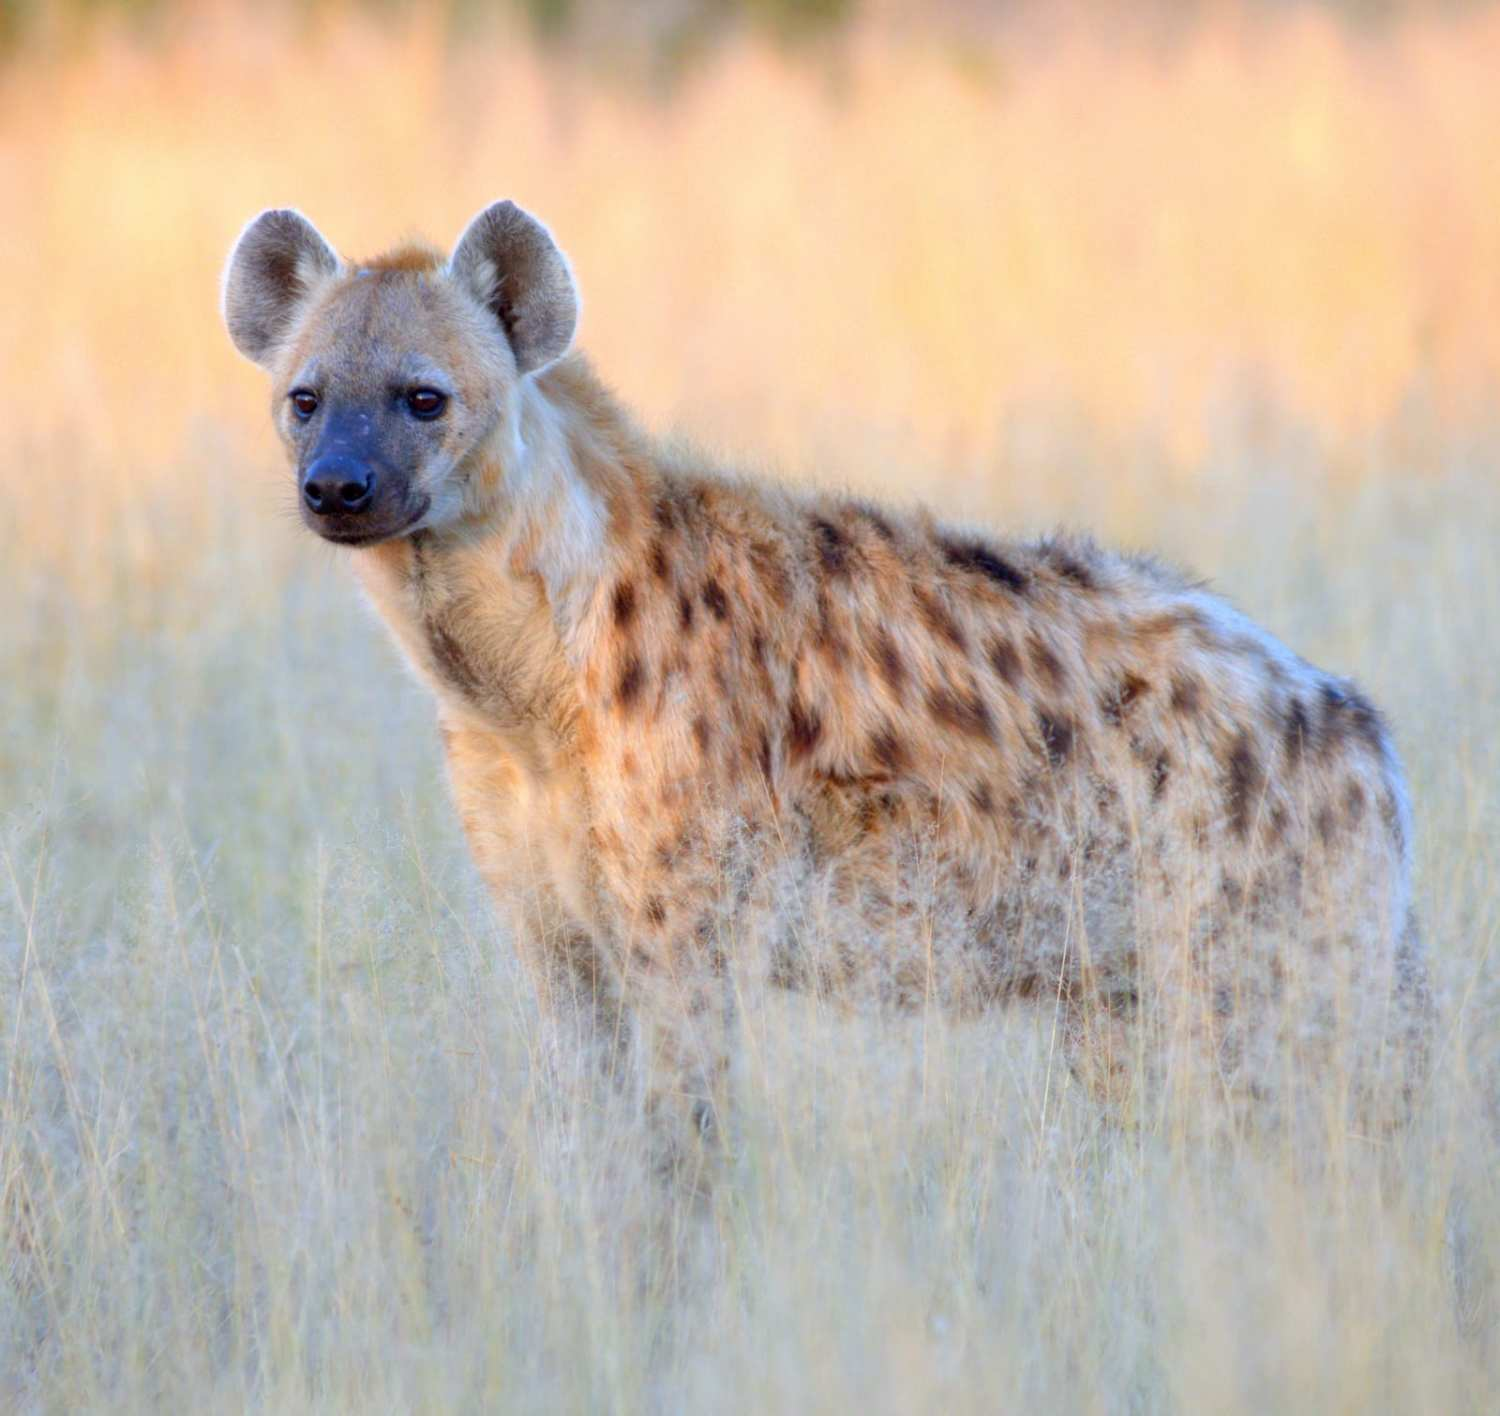 Spotted hyena on the grass